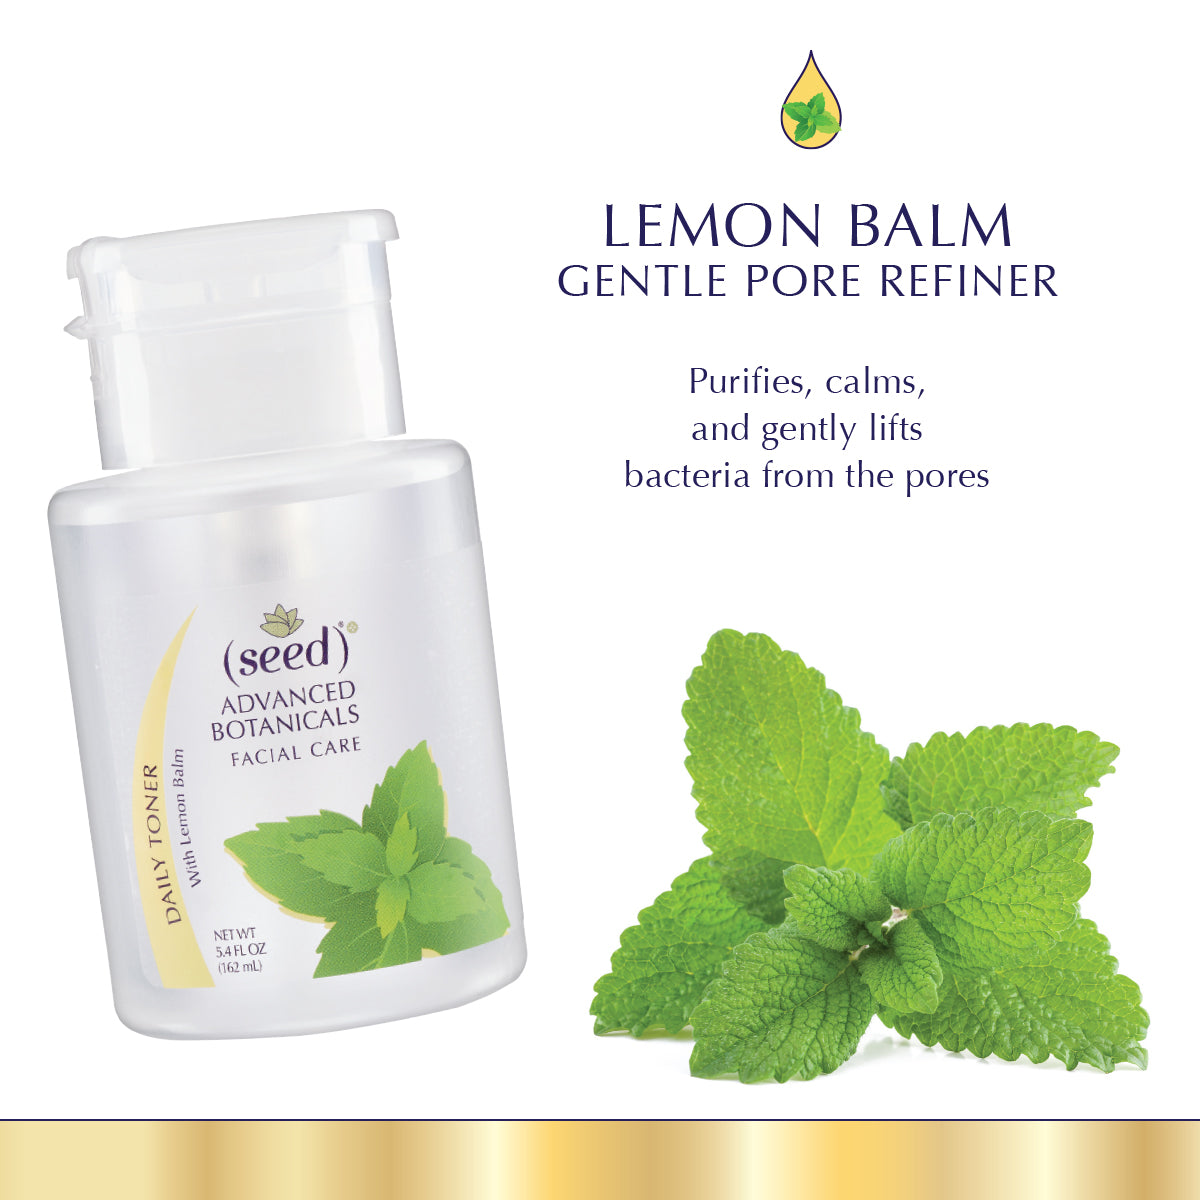 Seed Advanced Botanicals Lemon Balm Face Toner features Pure Lemon Balm Distillate